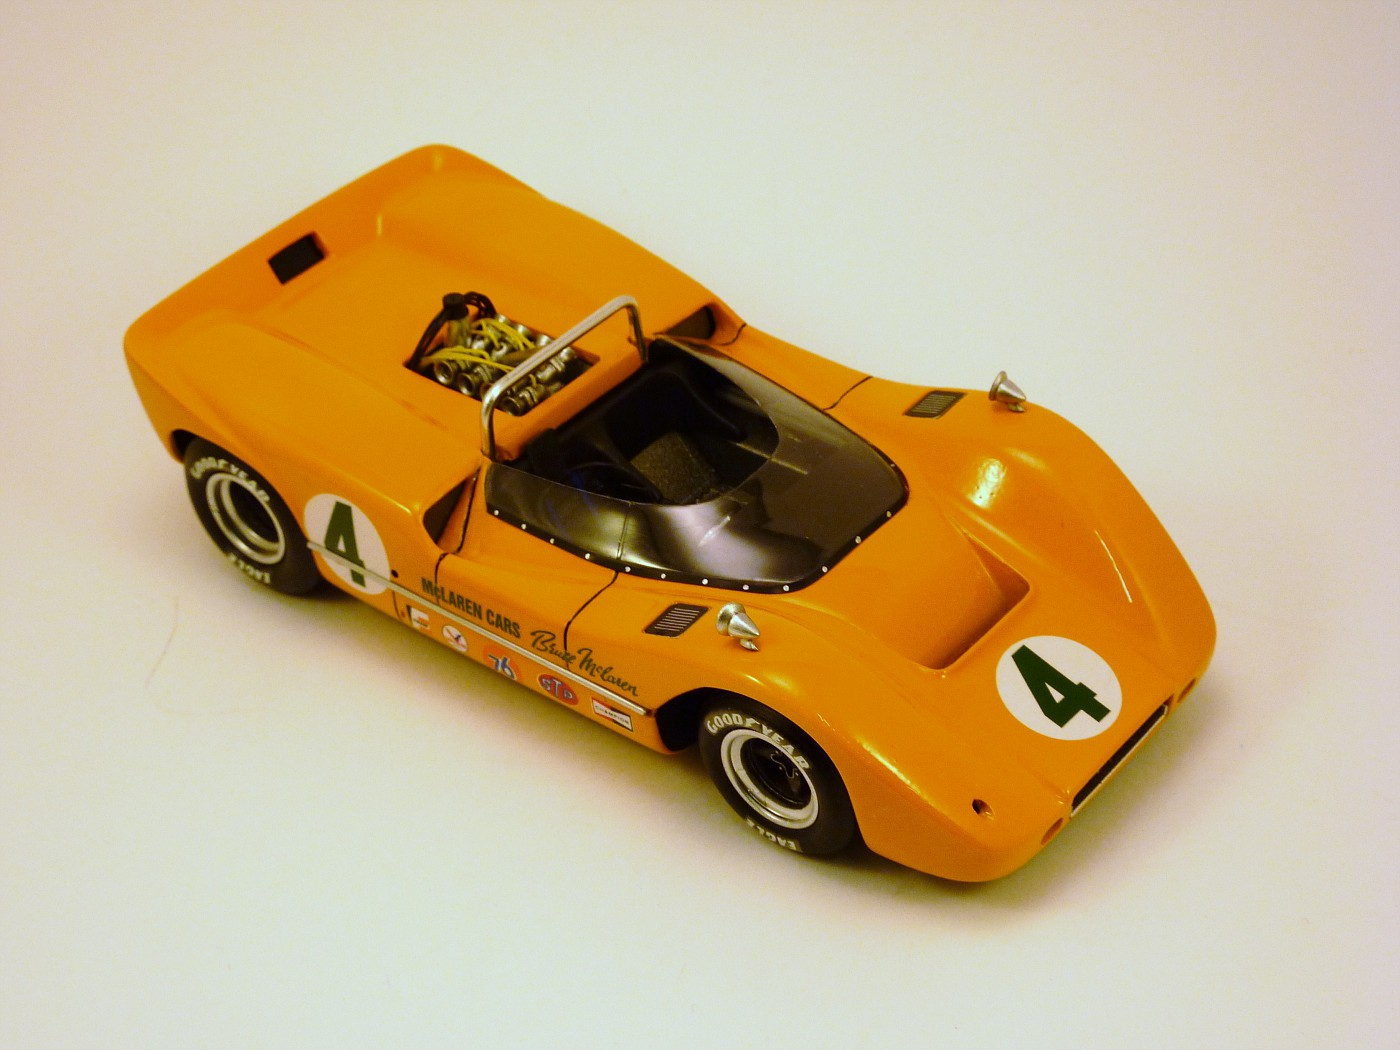 Plateau Can Am  OtosfilalesMcLarenm6afisher025-vi